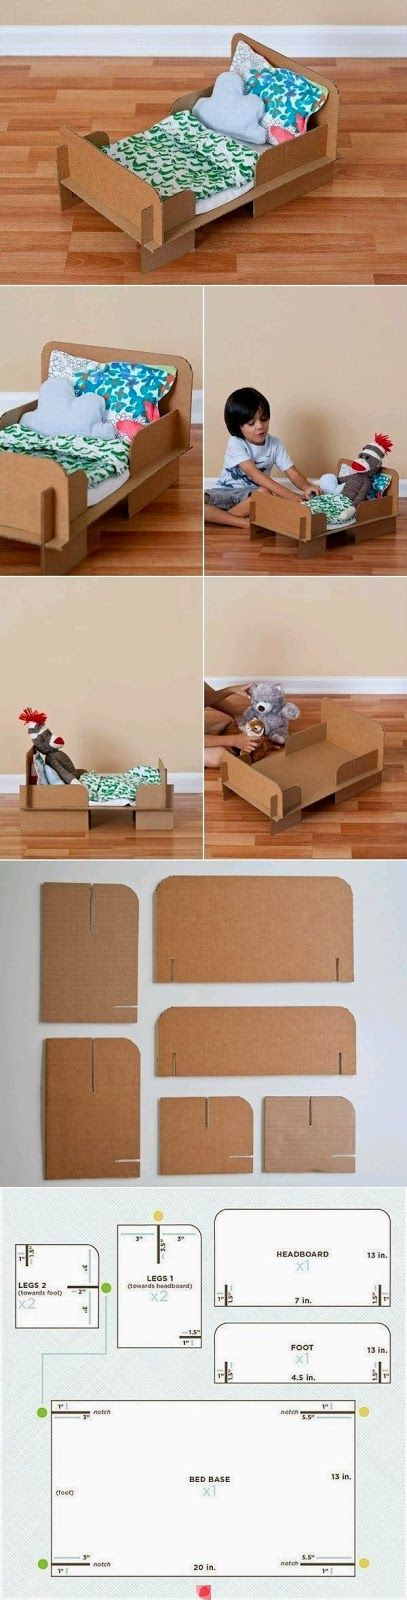 Cardboard doll bed pattern. Omg I could do this with plyboard